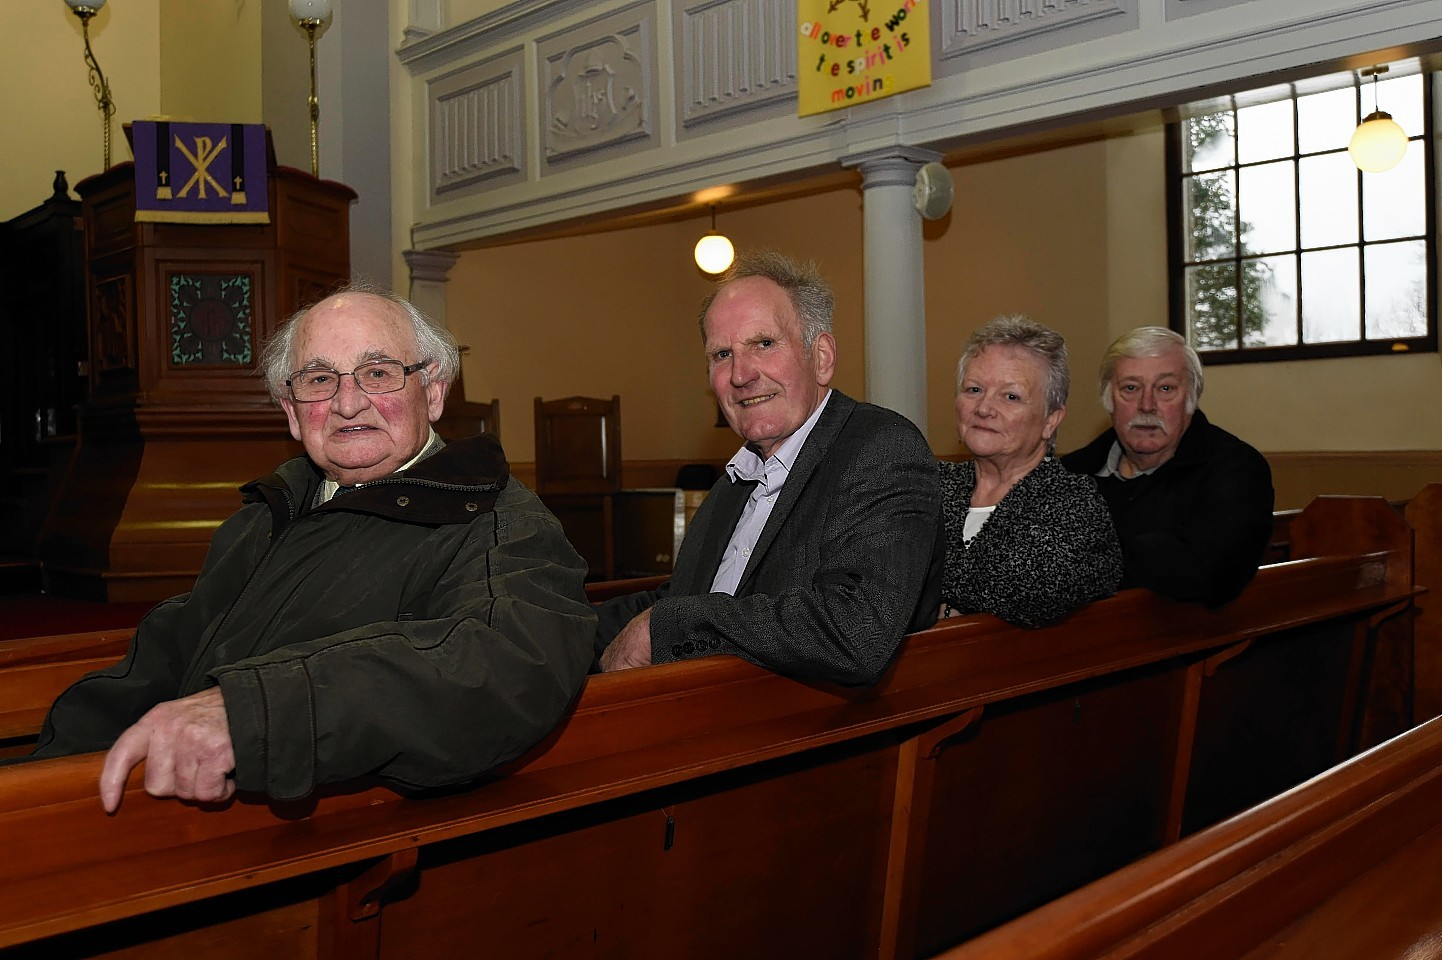 The committee seeking to find a minister for Crimond and Lonmay churches - Jim Bruce, Roy Kinghorn, Ann Bisset and Gordon Reid